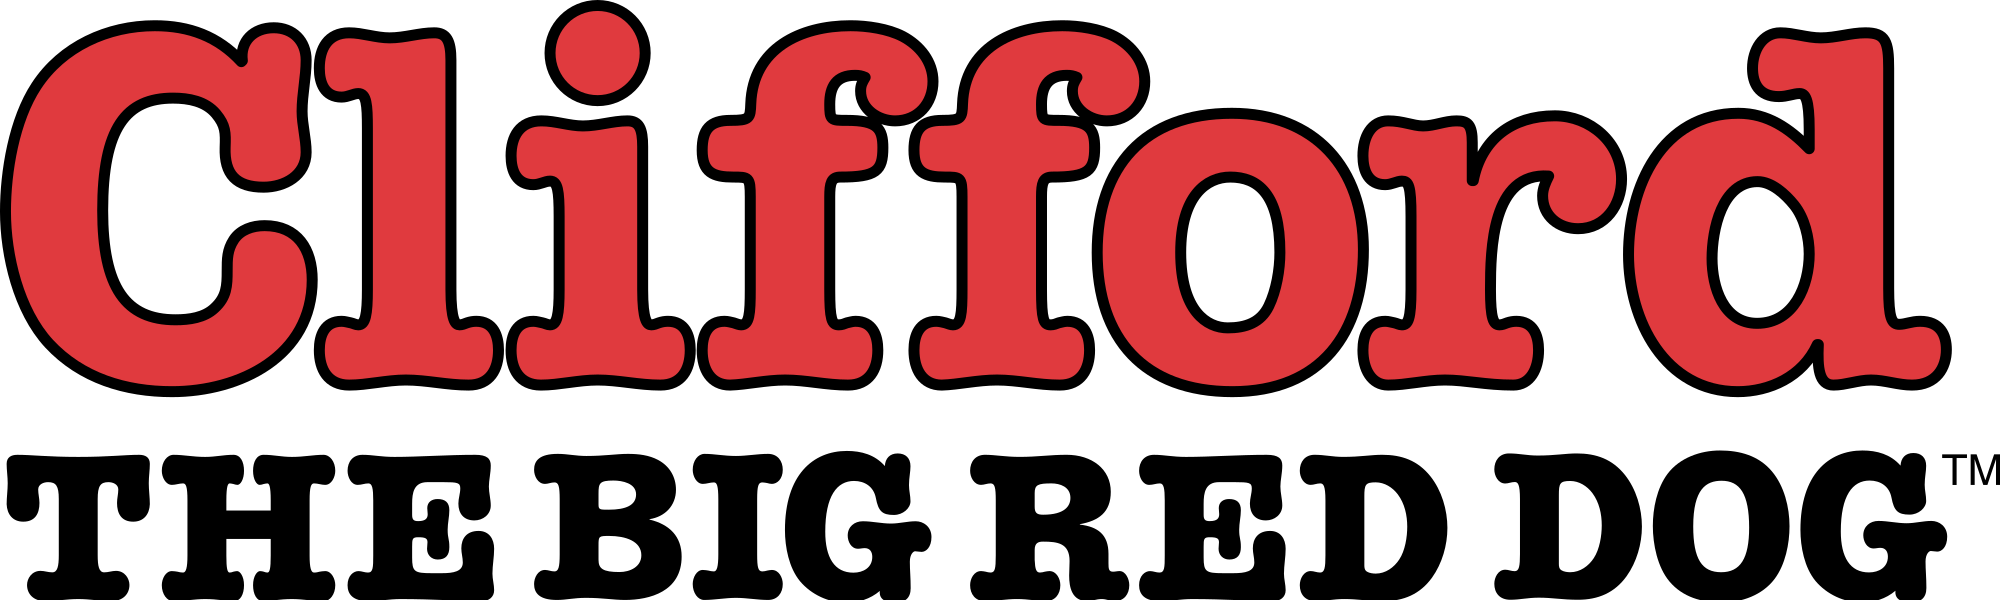 Clifford_the_Big_Red_Dog_logo